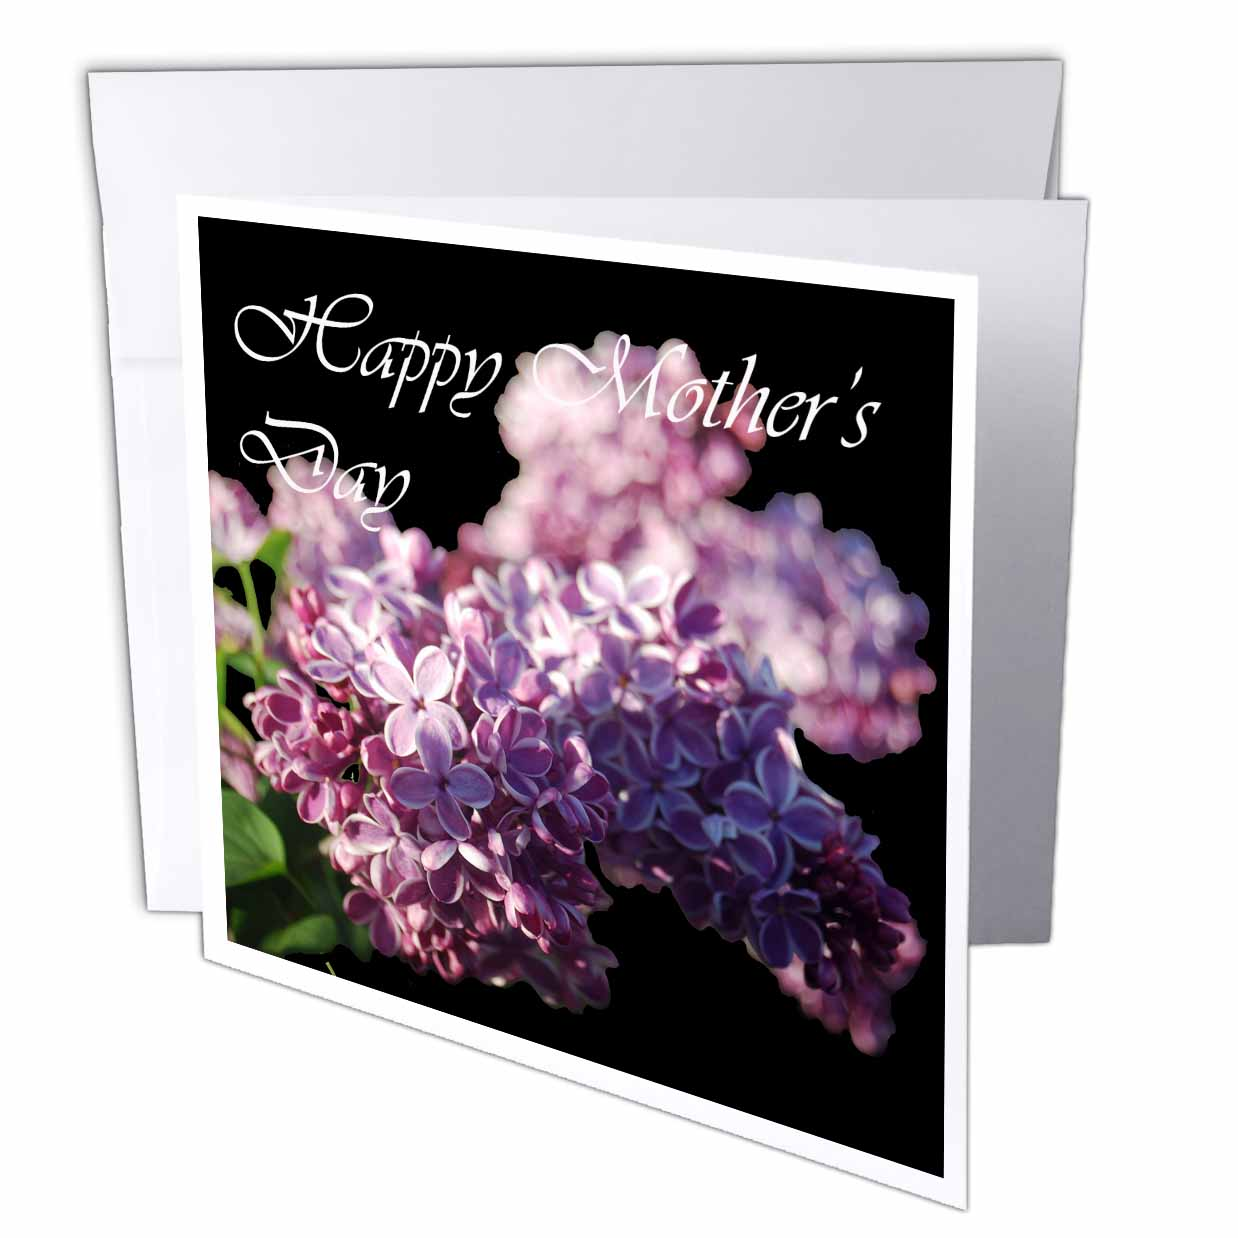 3dRose Lavender Lilacs on Black Background Photograph Happy Mothers Day, Greeting Cards, 6 x 6 inches, set of 6